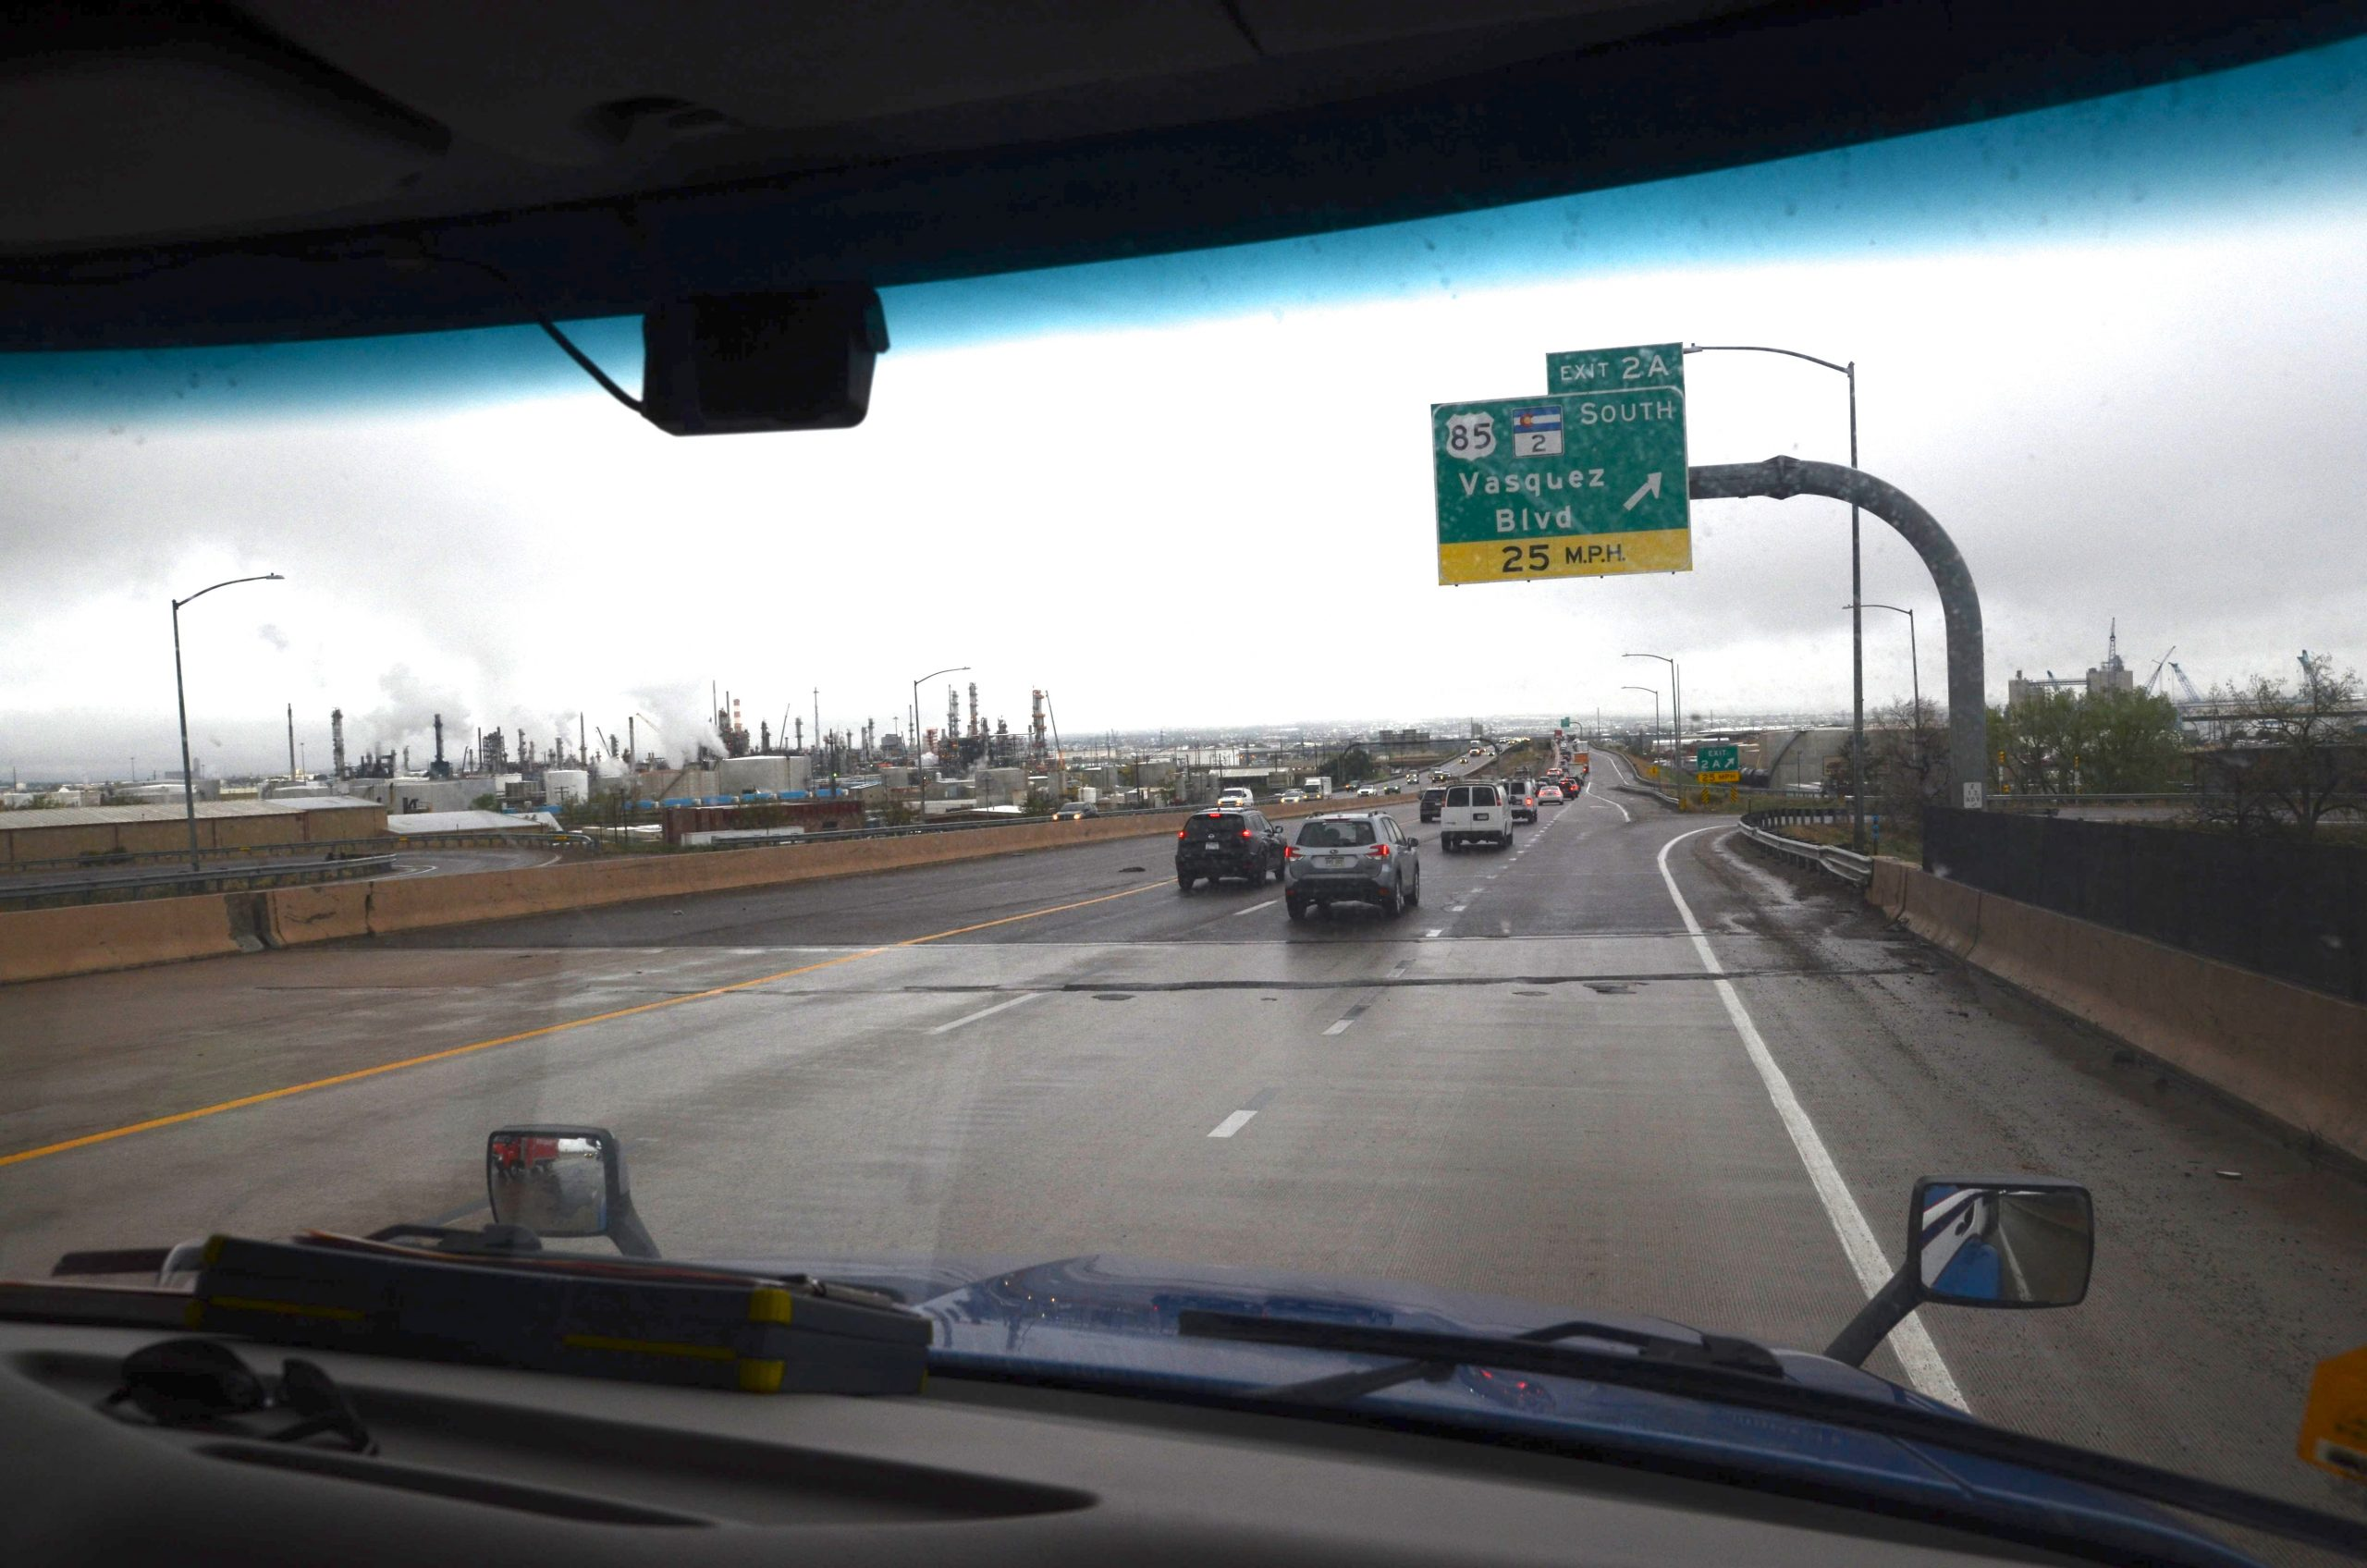 Truck Driver Jesus Torres' route took him on Interstate 270 just after leaving the Phillips 66 terminal in Commerce City.